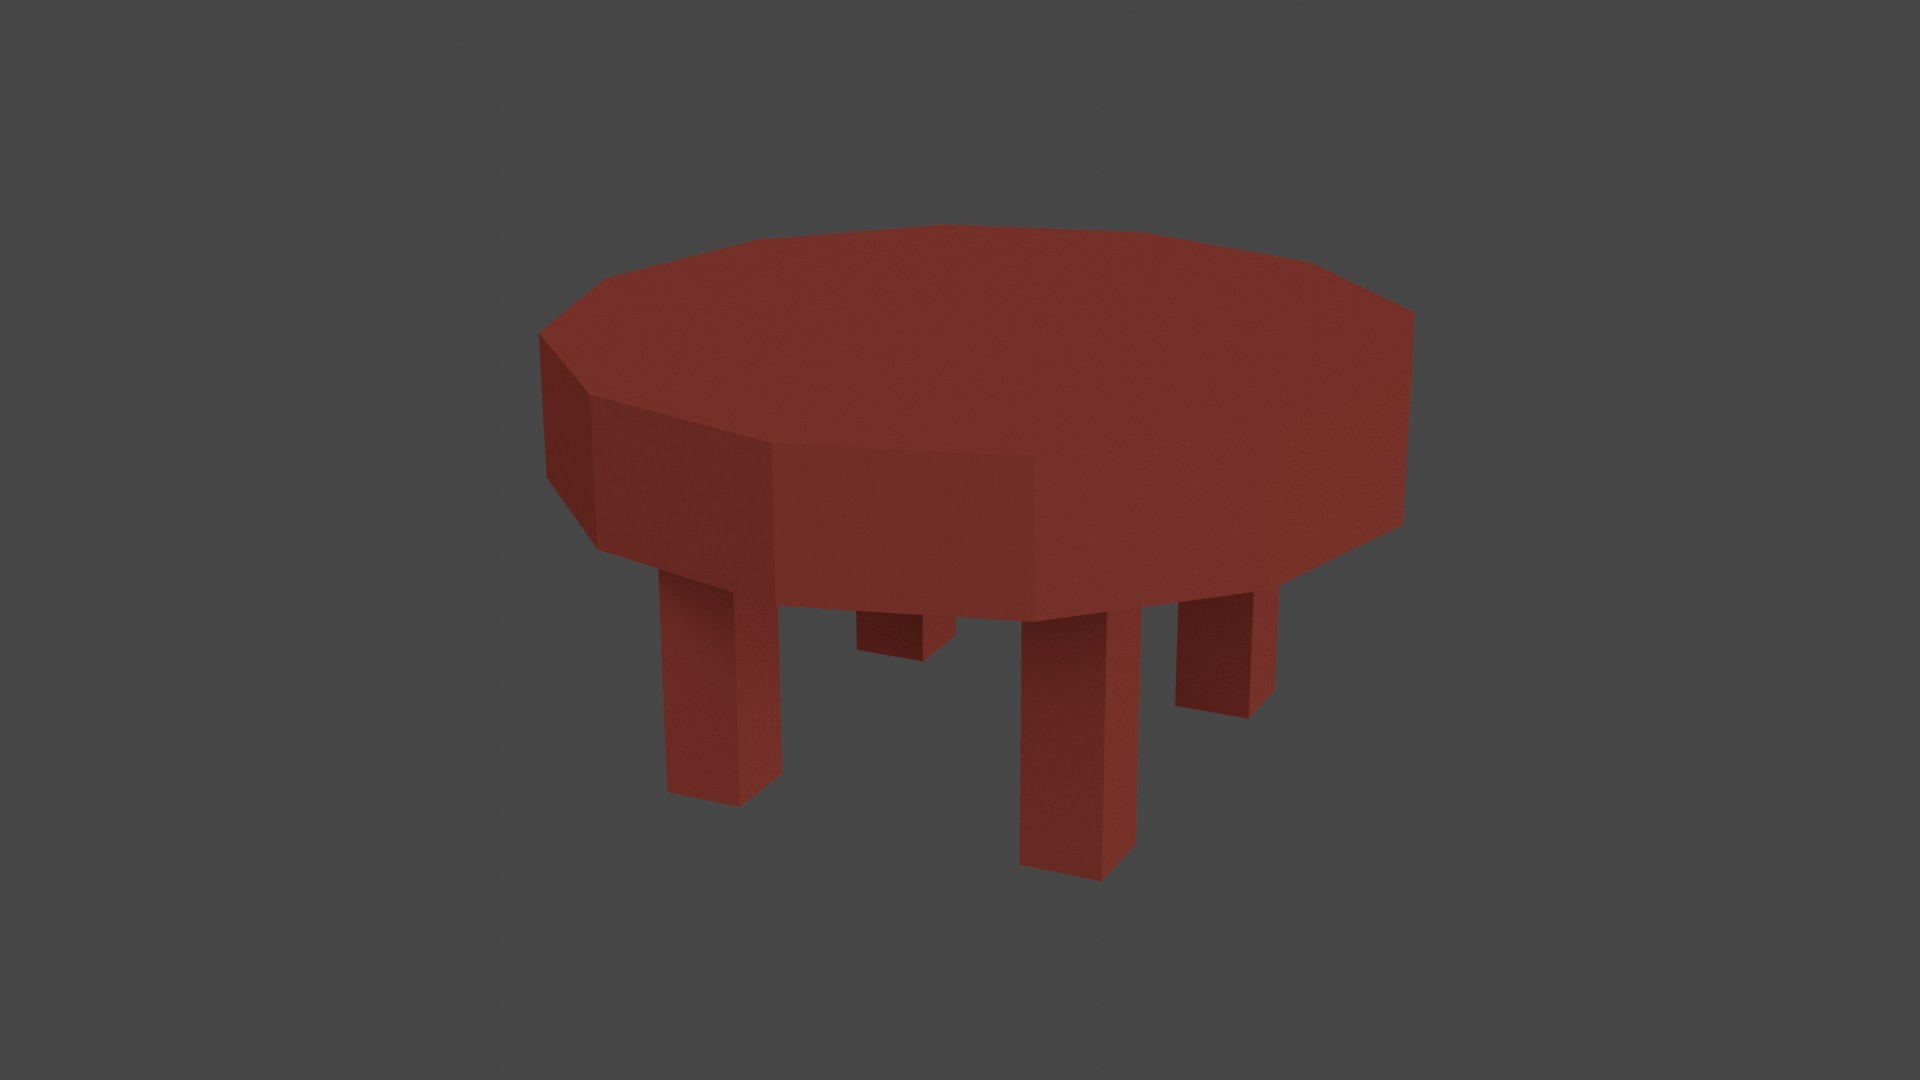 Low Poly Red Furniture 9